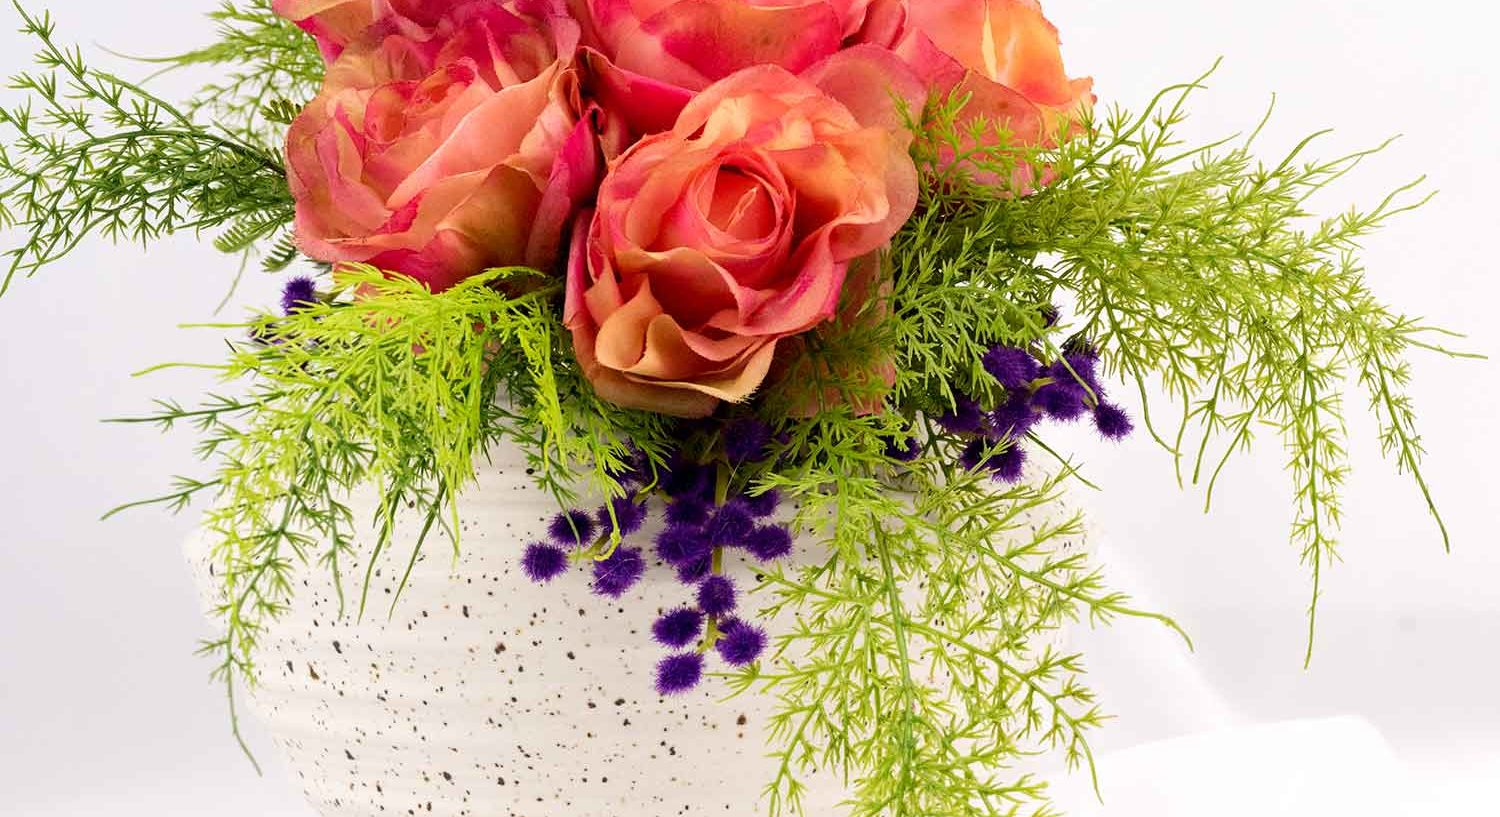 How to choose the perfect bridal bouquet?